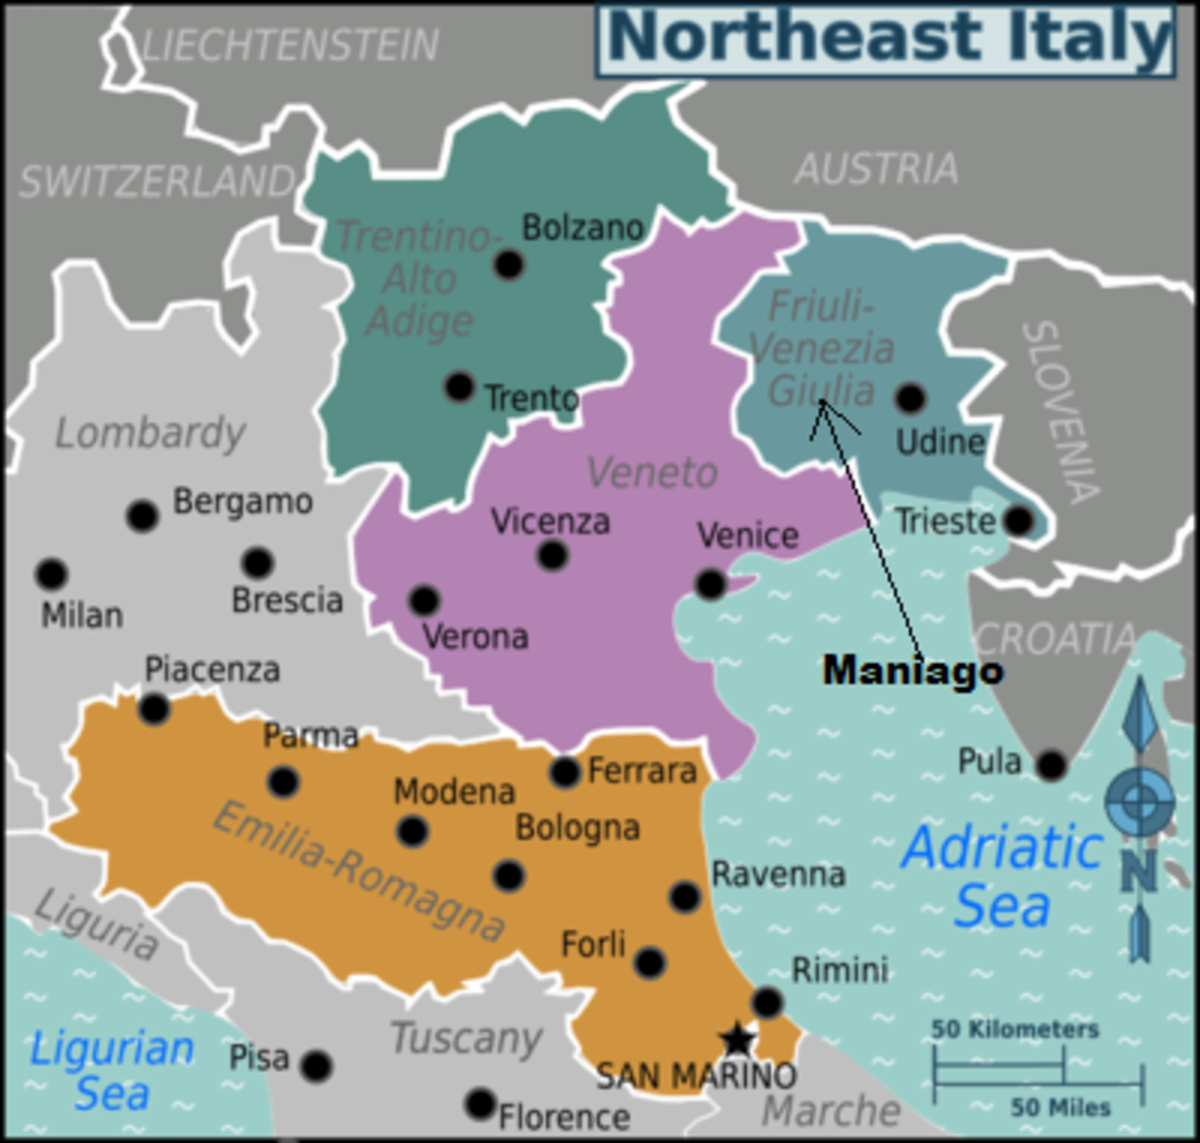 Map showing Maniago, Italy.